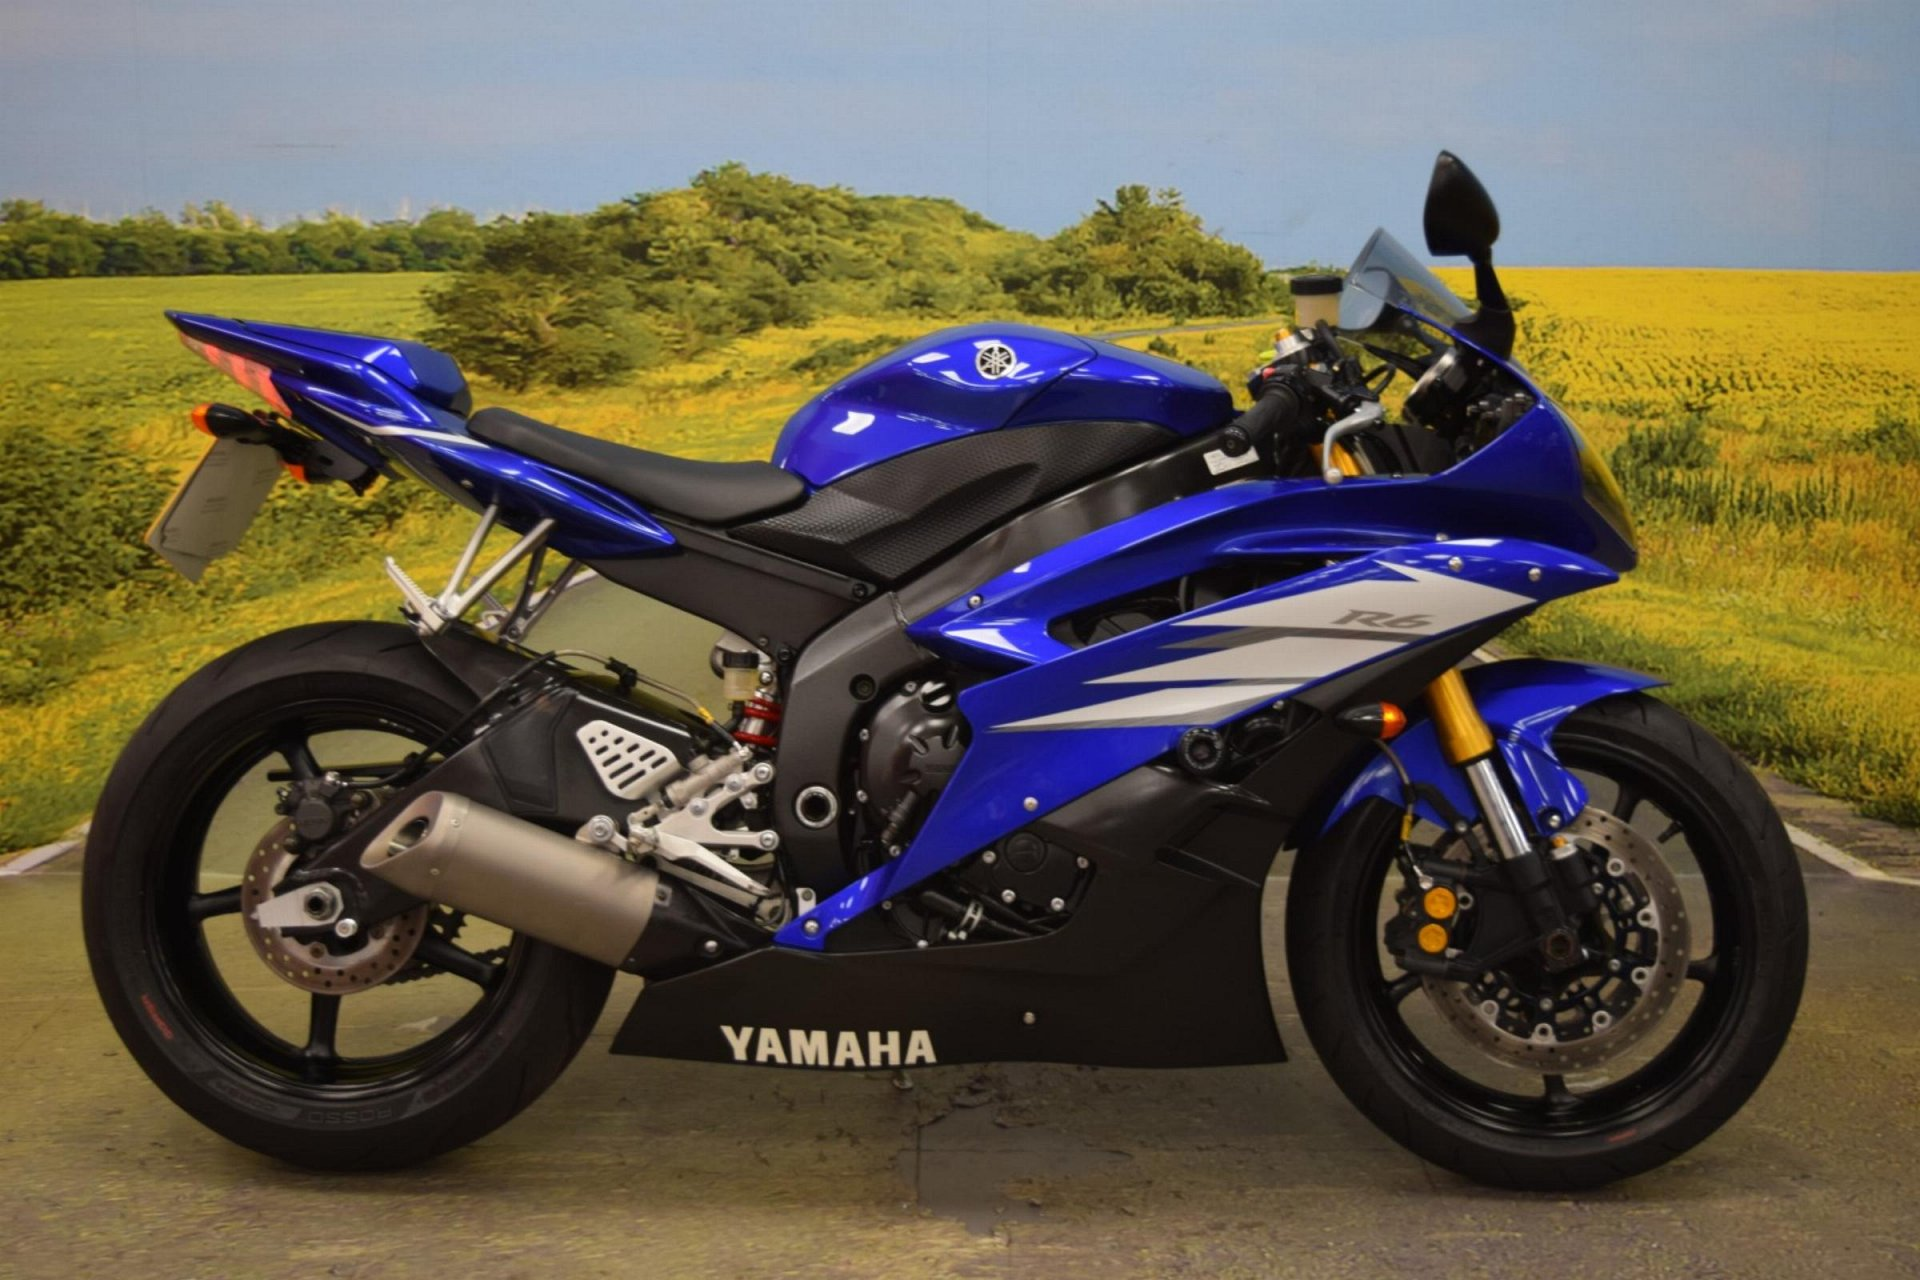 2006 Yamaha YZF R6 for sale in Staffordshire